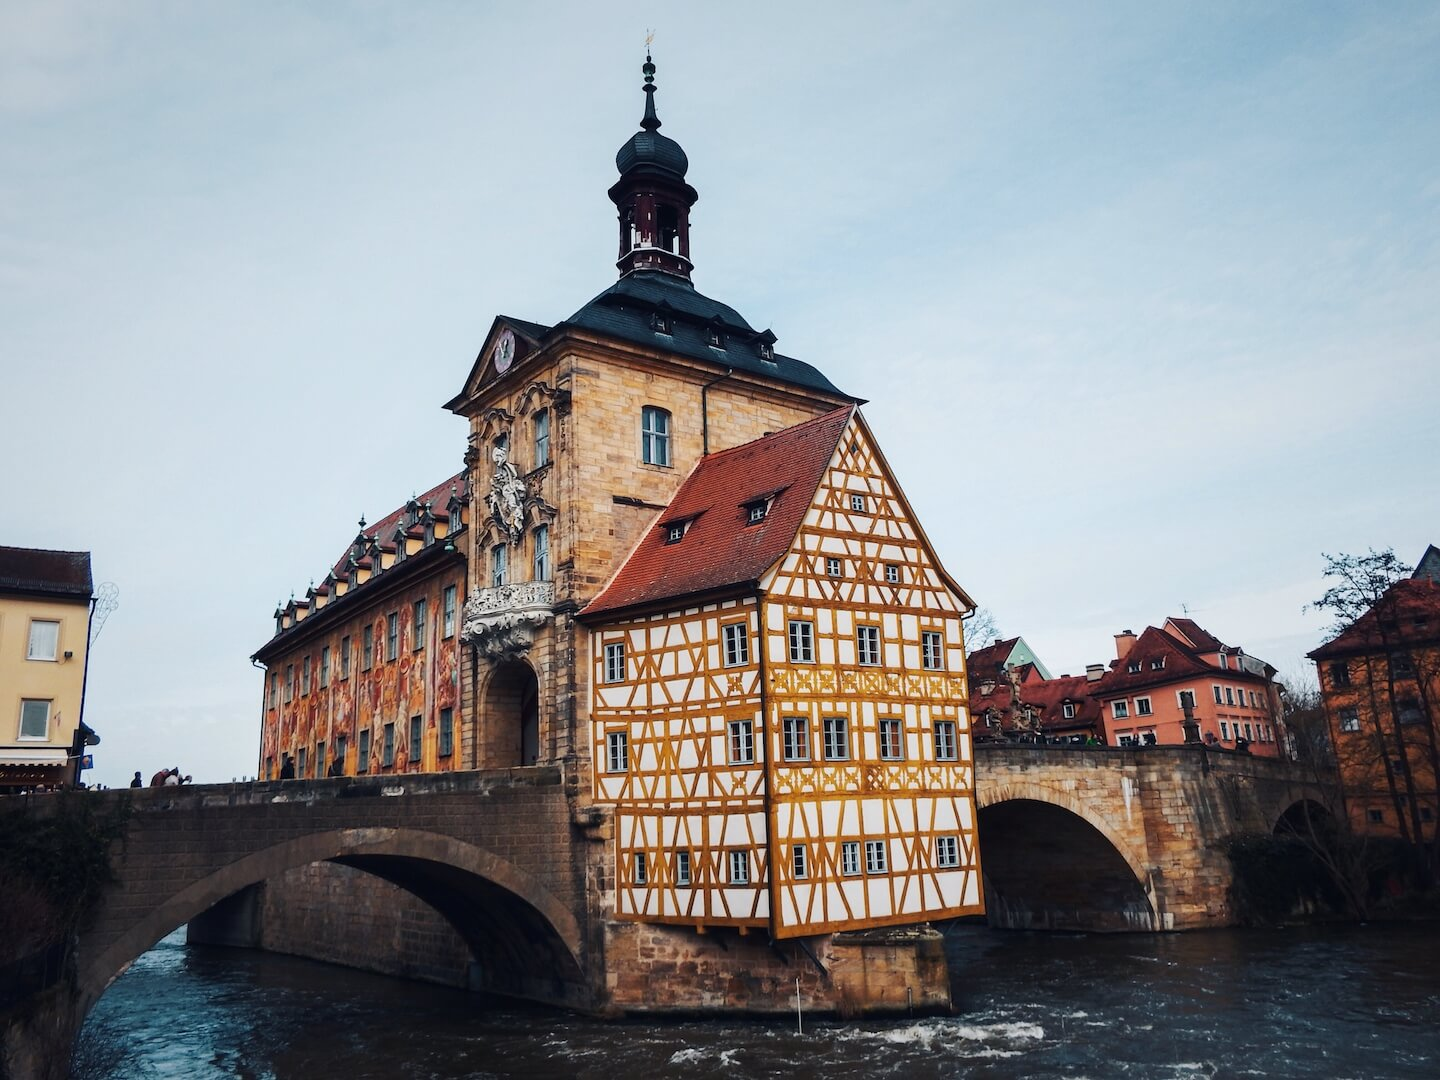 Germany Travel Guide - where to go, what to see, what to experience, what to eat and drink